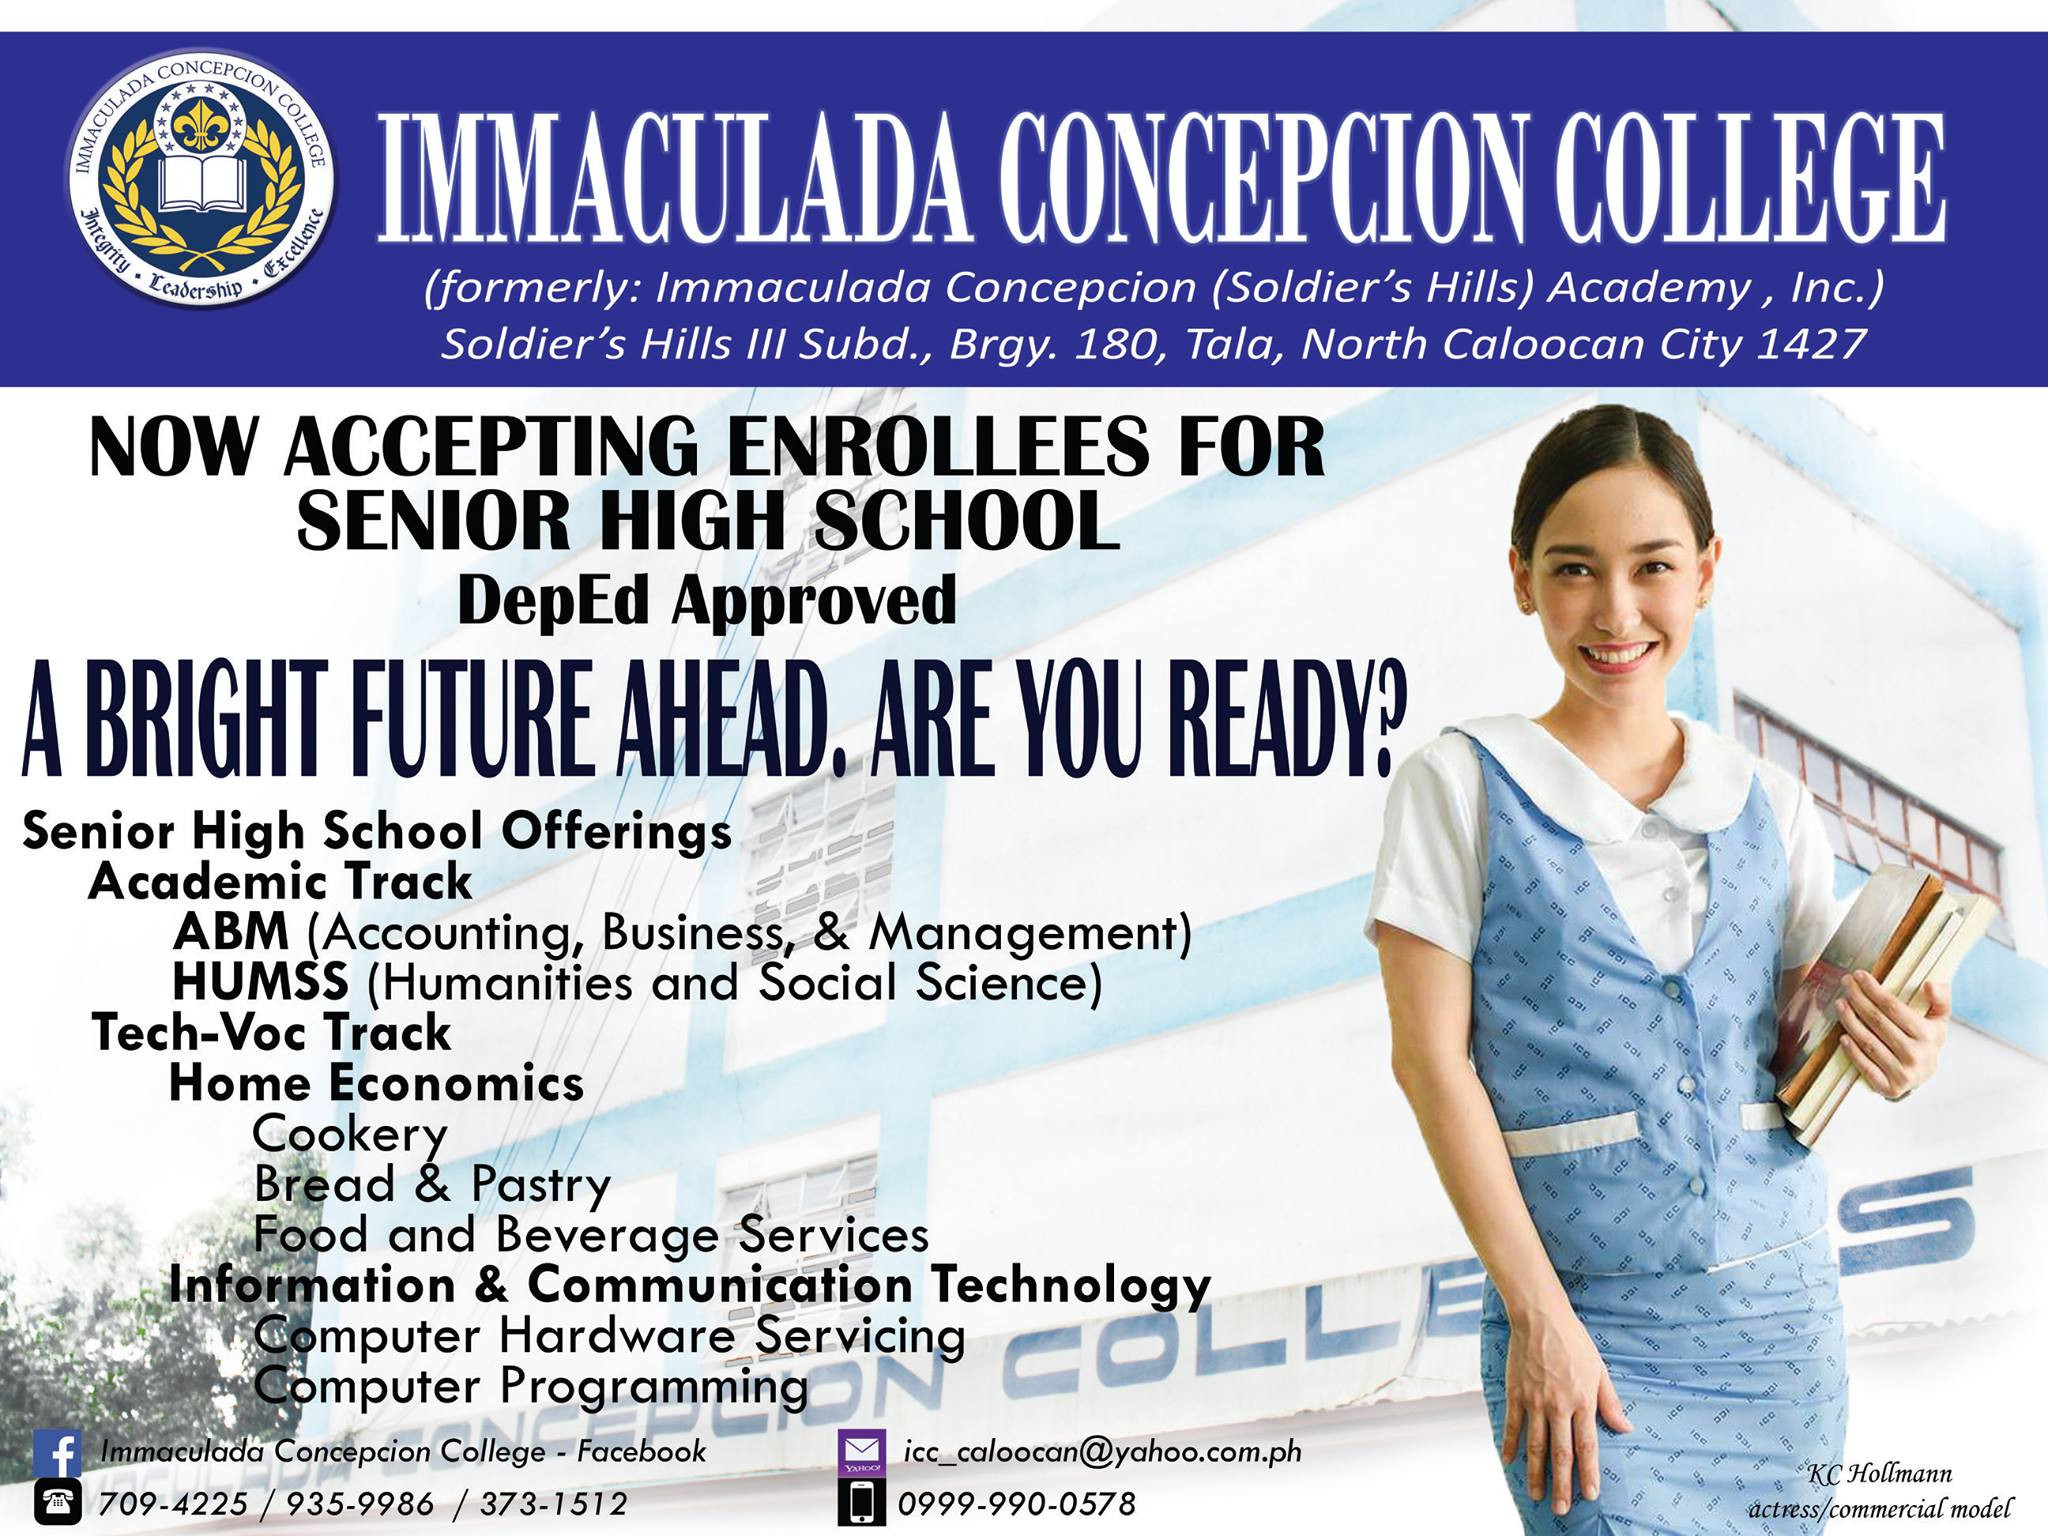 Immaculada Concepcion College